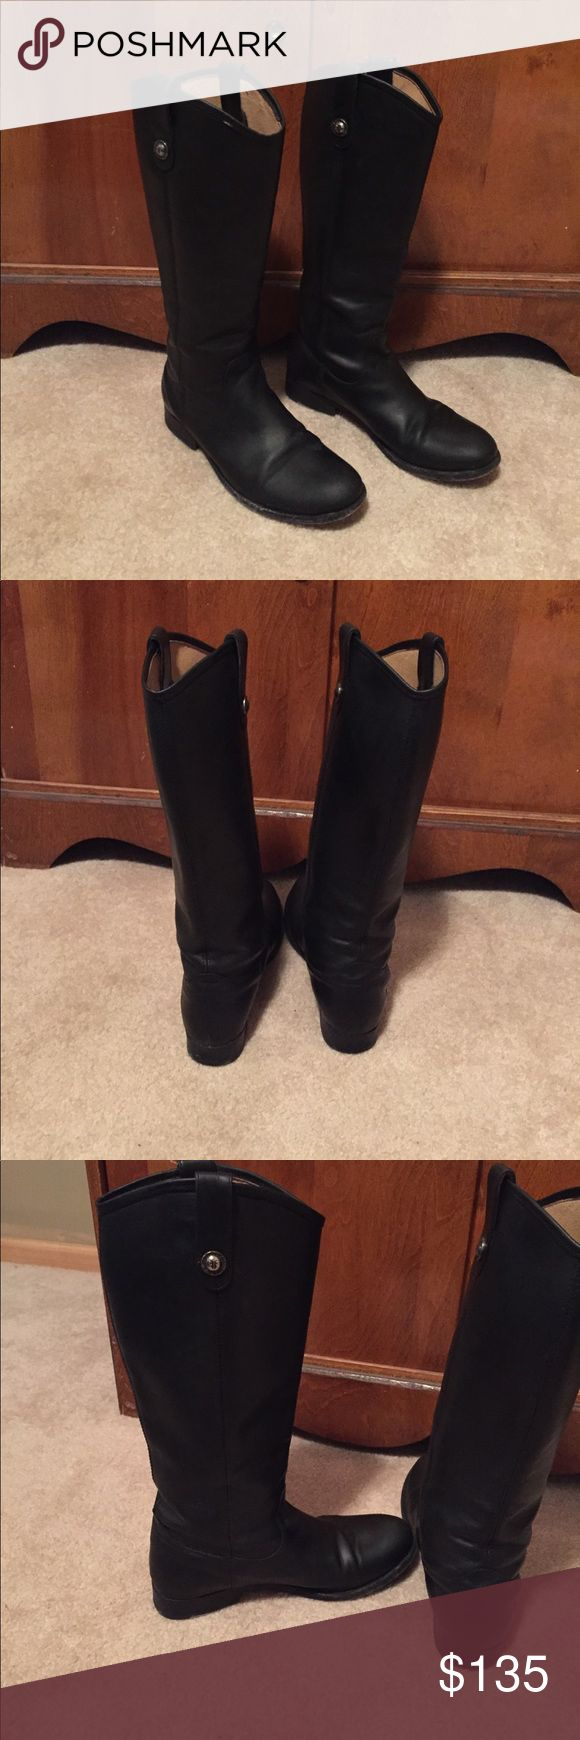 Black Melissa Frye boots Black leather Melissa style Frye boots. Leather in great shape..minor wear on soles. Calf measurements are 14 inches. 1 inch heel. Frye Shoes